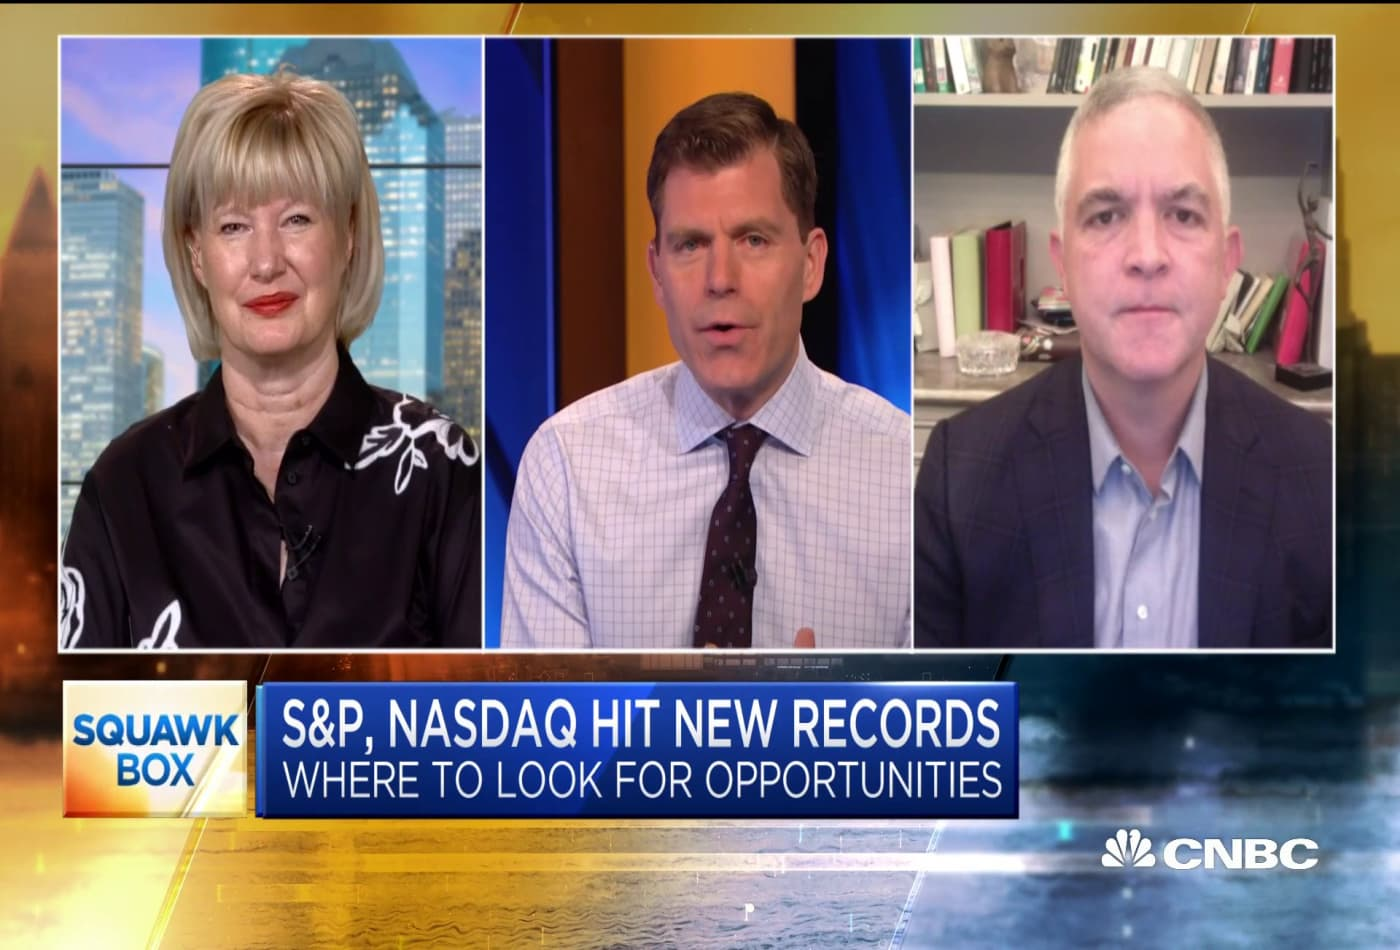 Two pros on investment opportunities as the S&P 500, Nasdaq hit new records